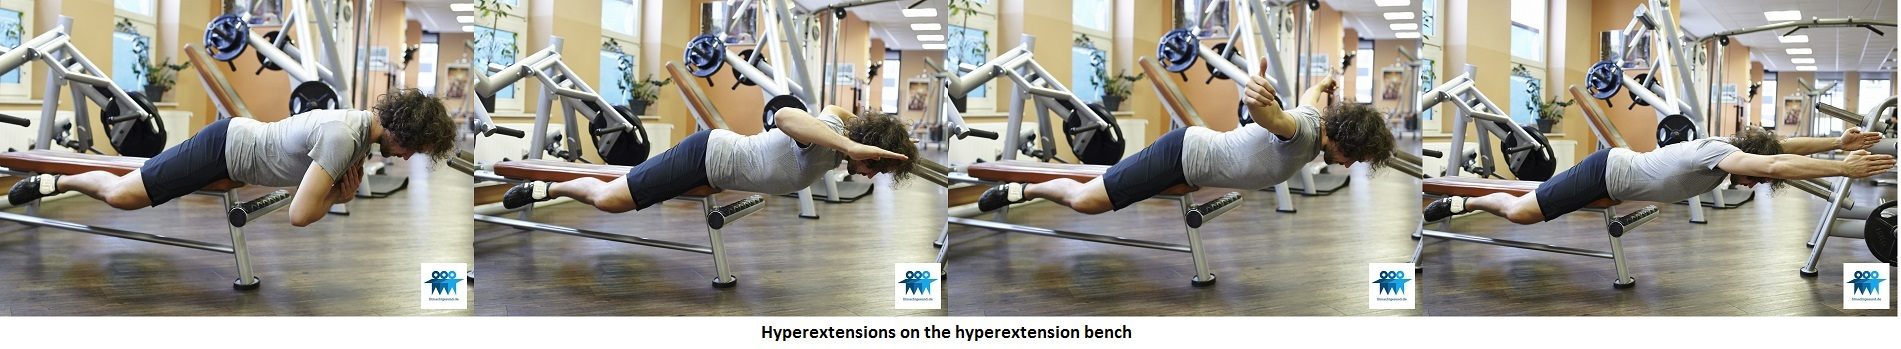 Hyperextensions on the bench